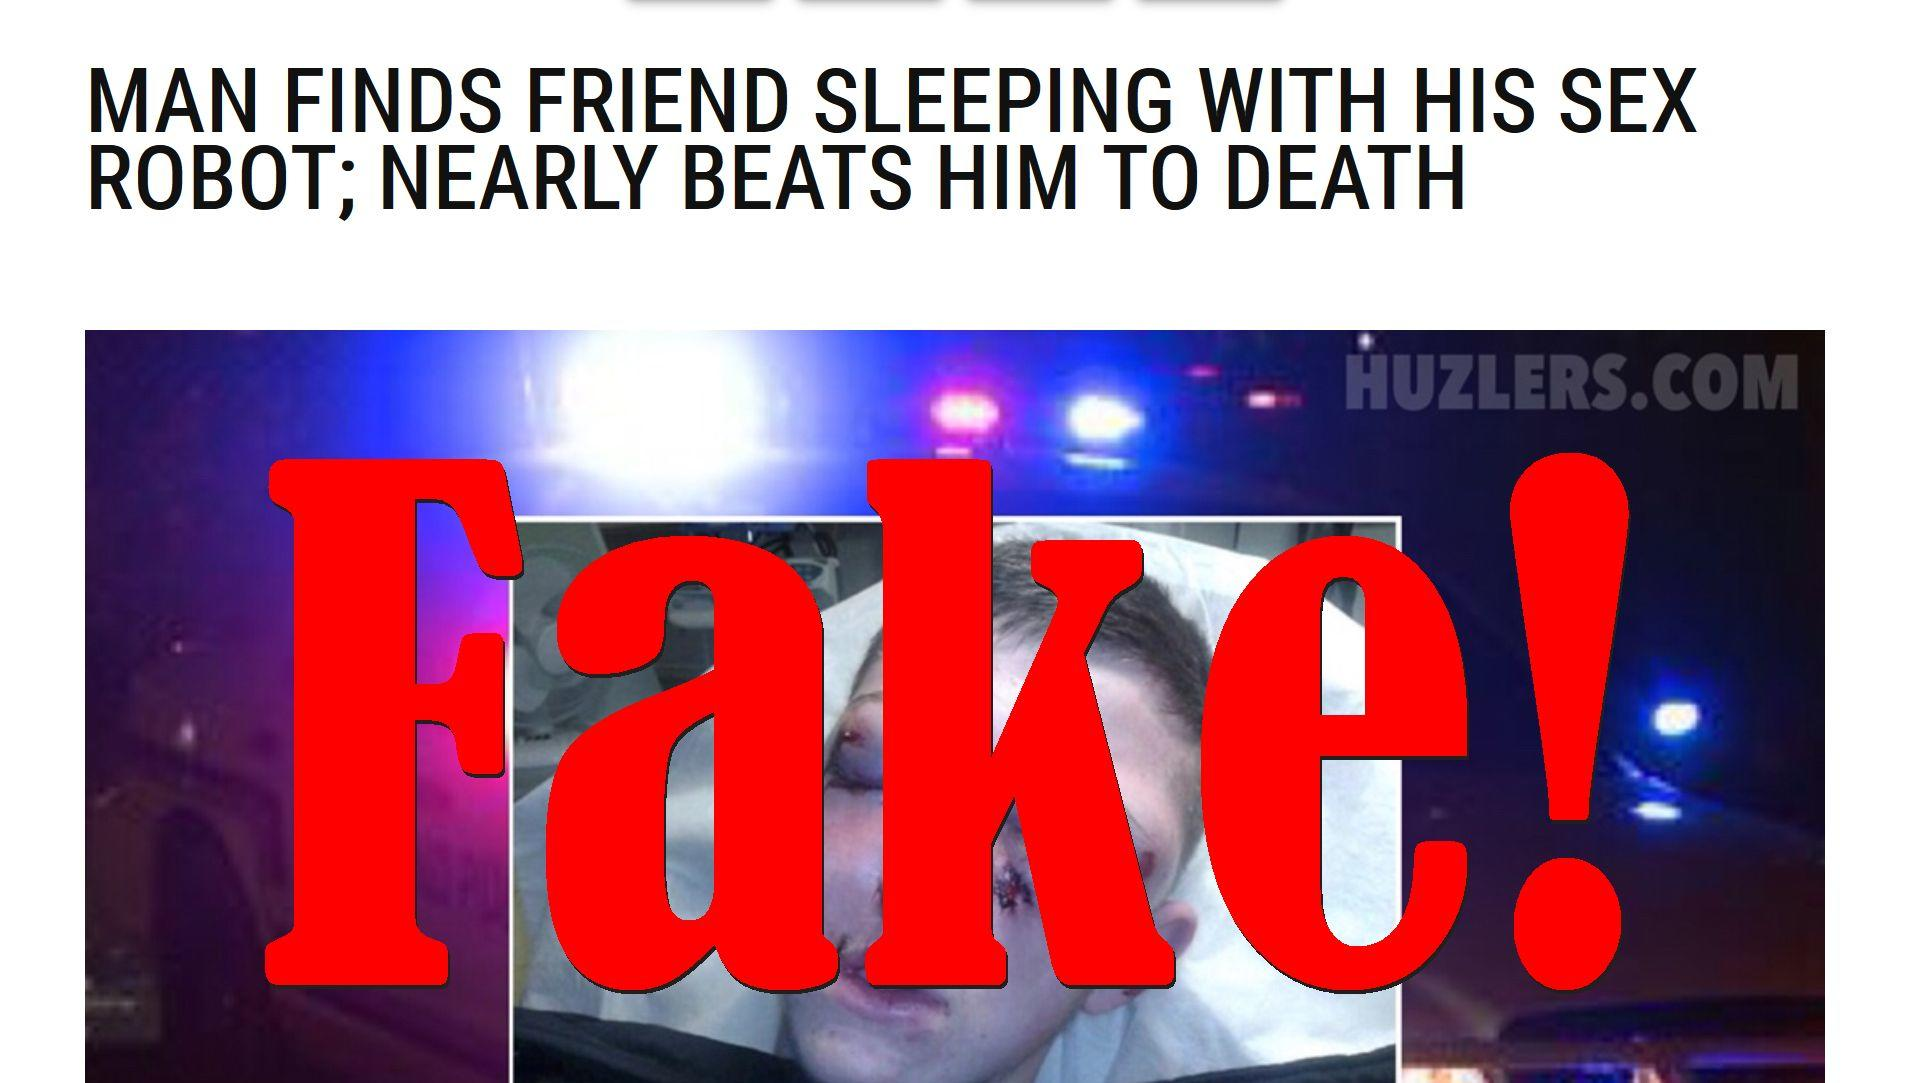 Fake News: Man Did NOT Beat Friend Nearly To Death After He Finds Him Sleeping With His Sex Robot